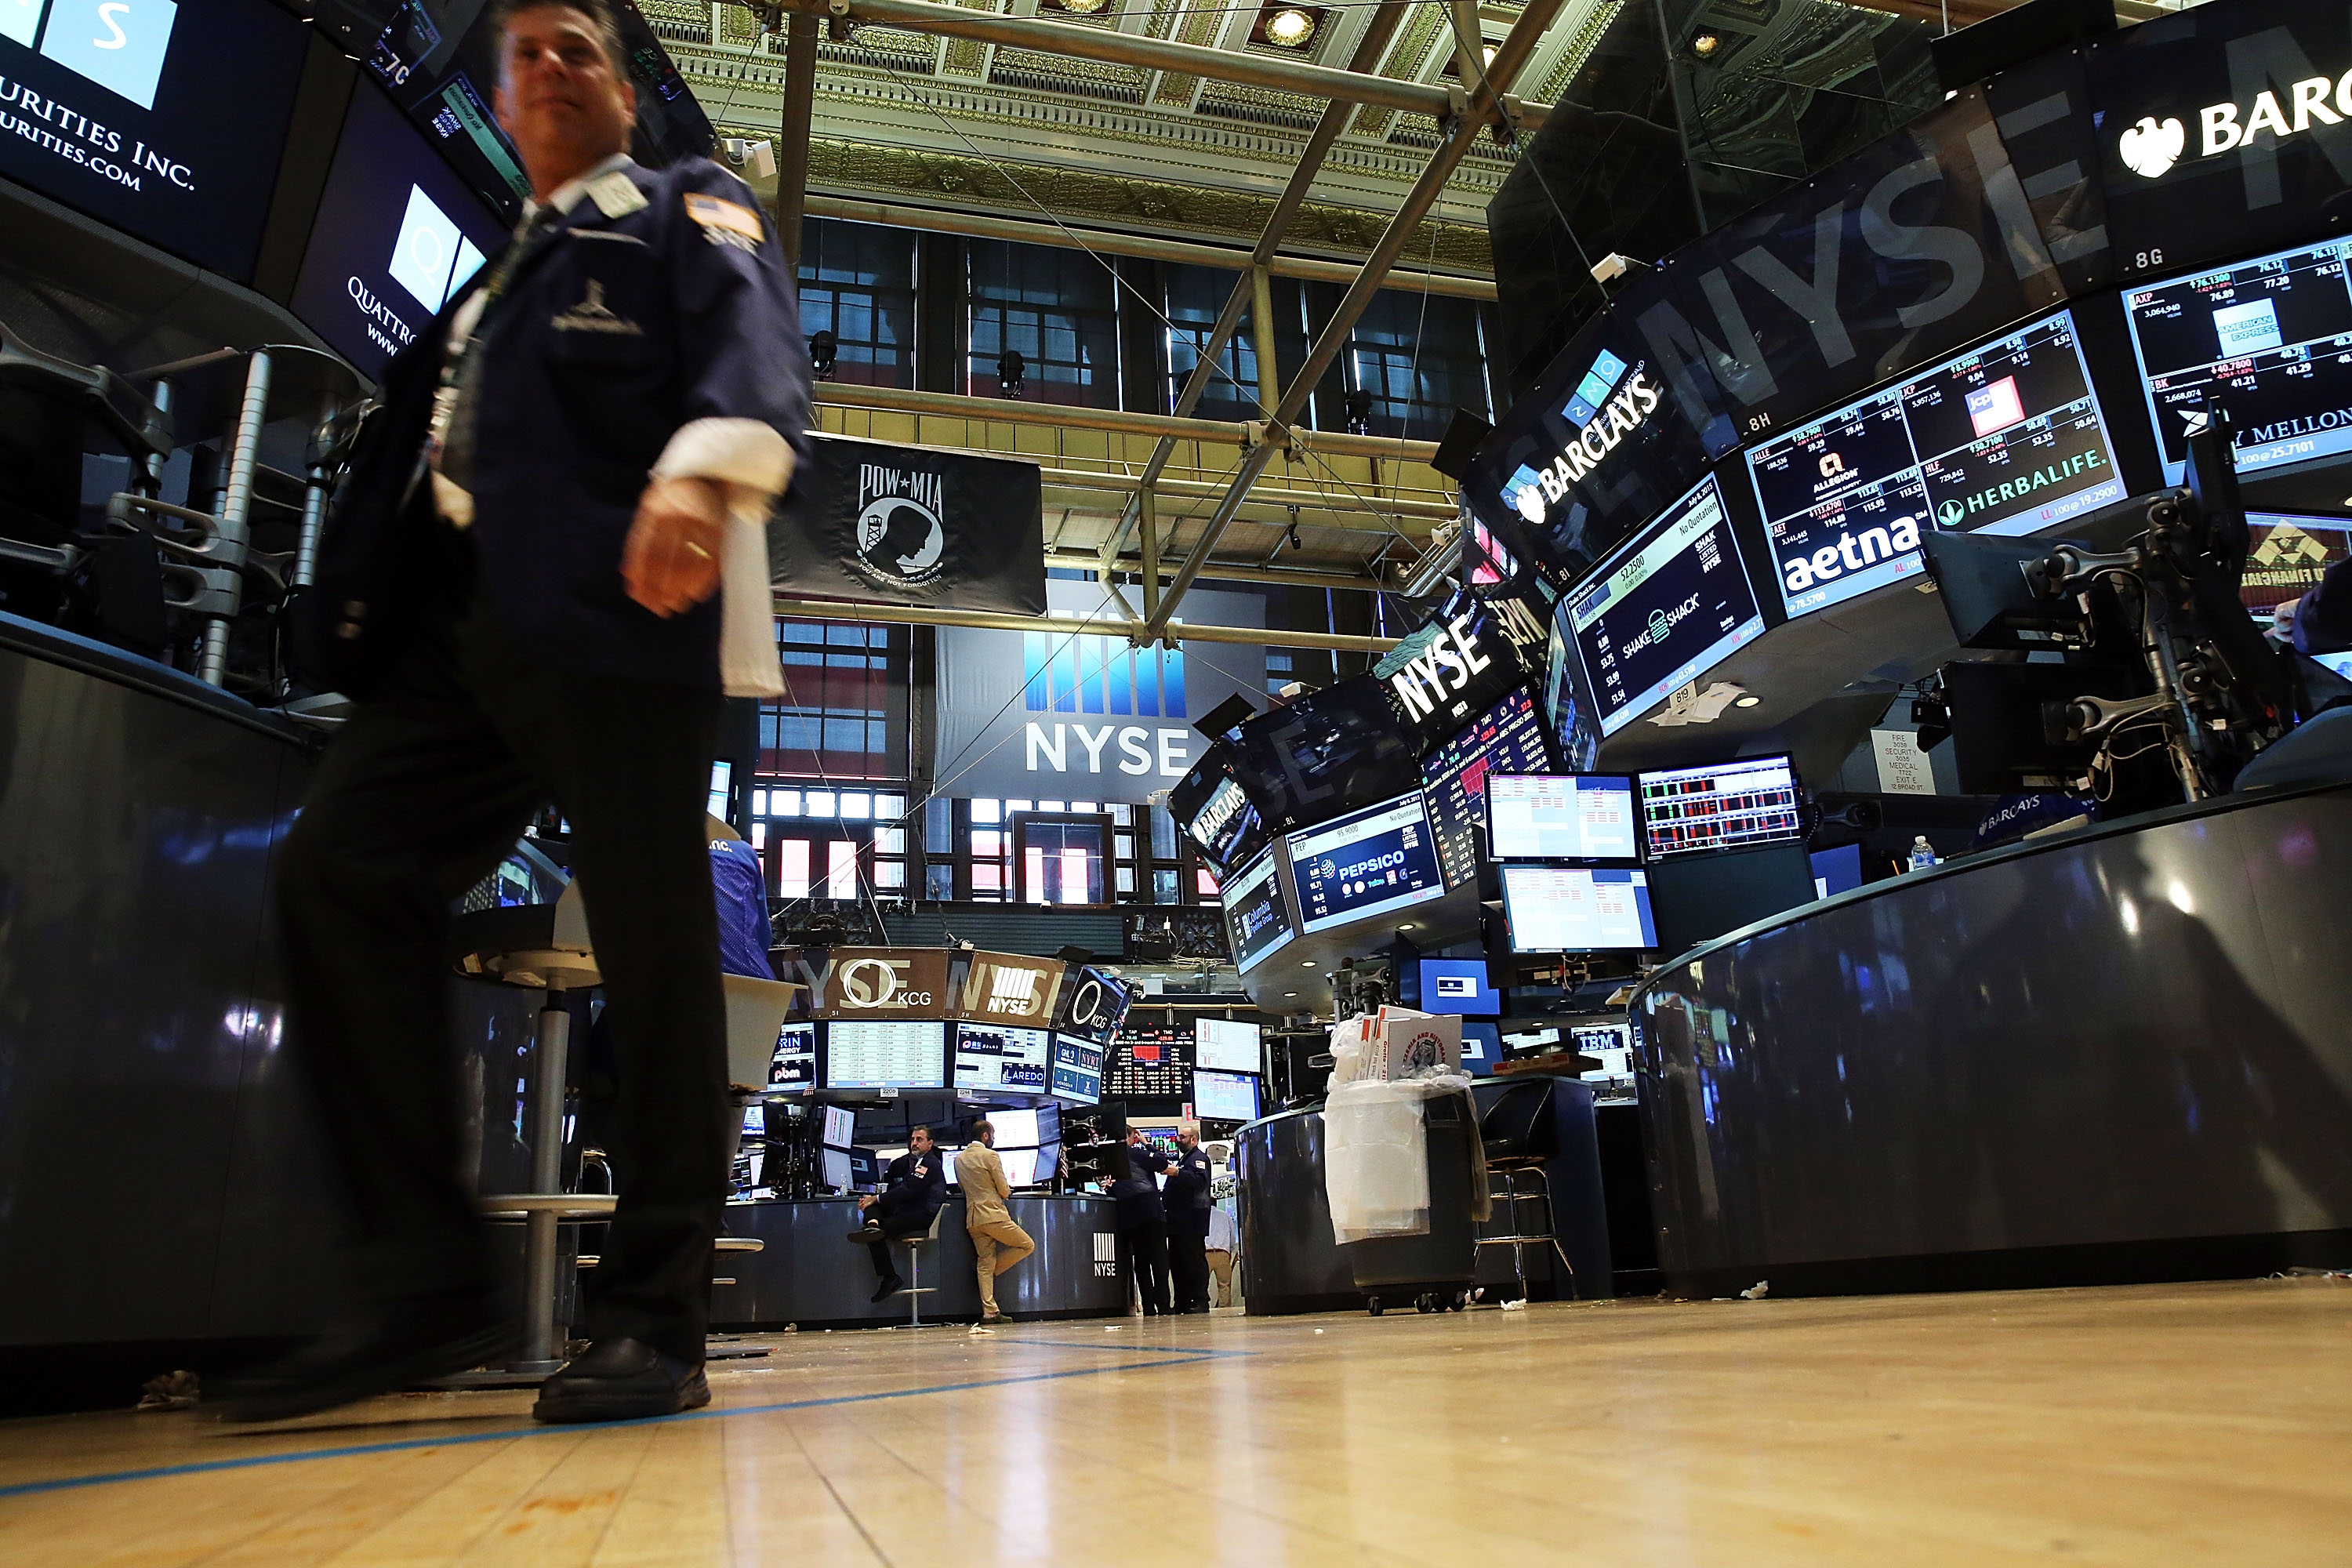 After New York Stock Exchange Outage Anonymous Hacker